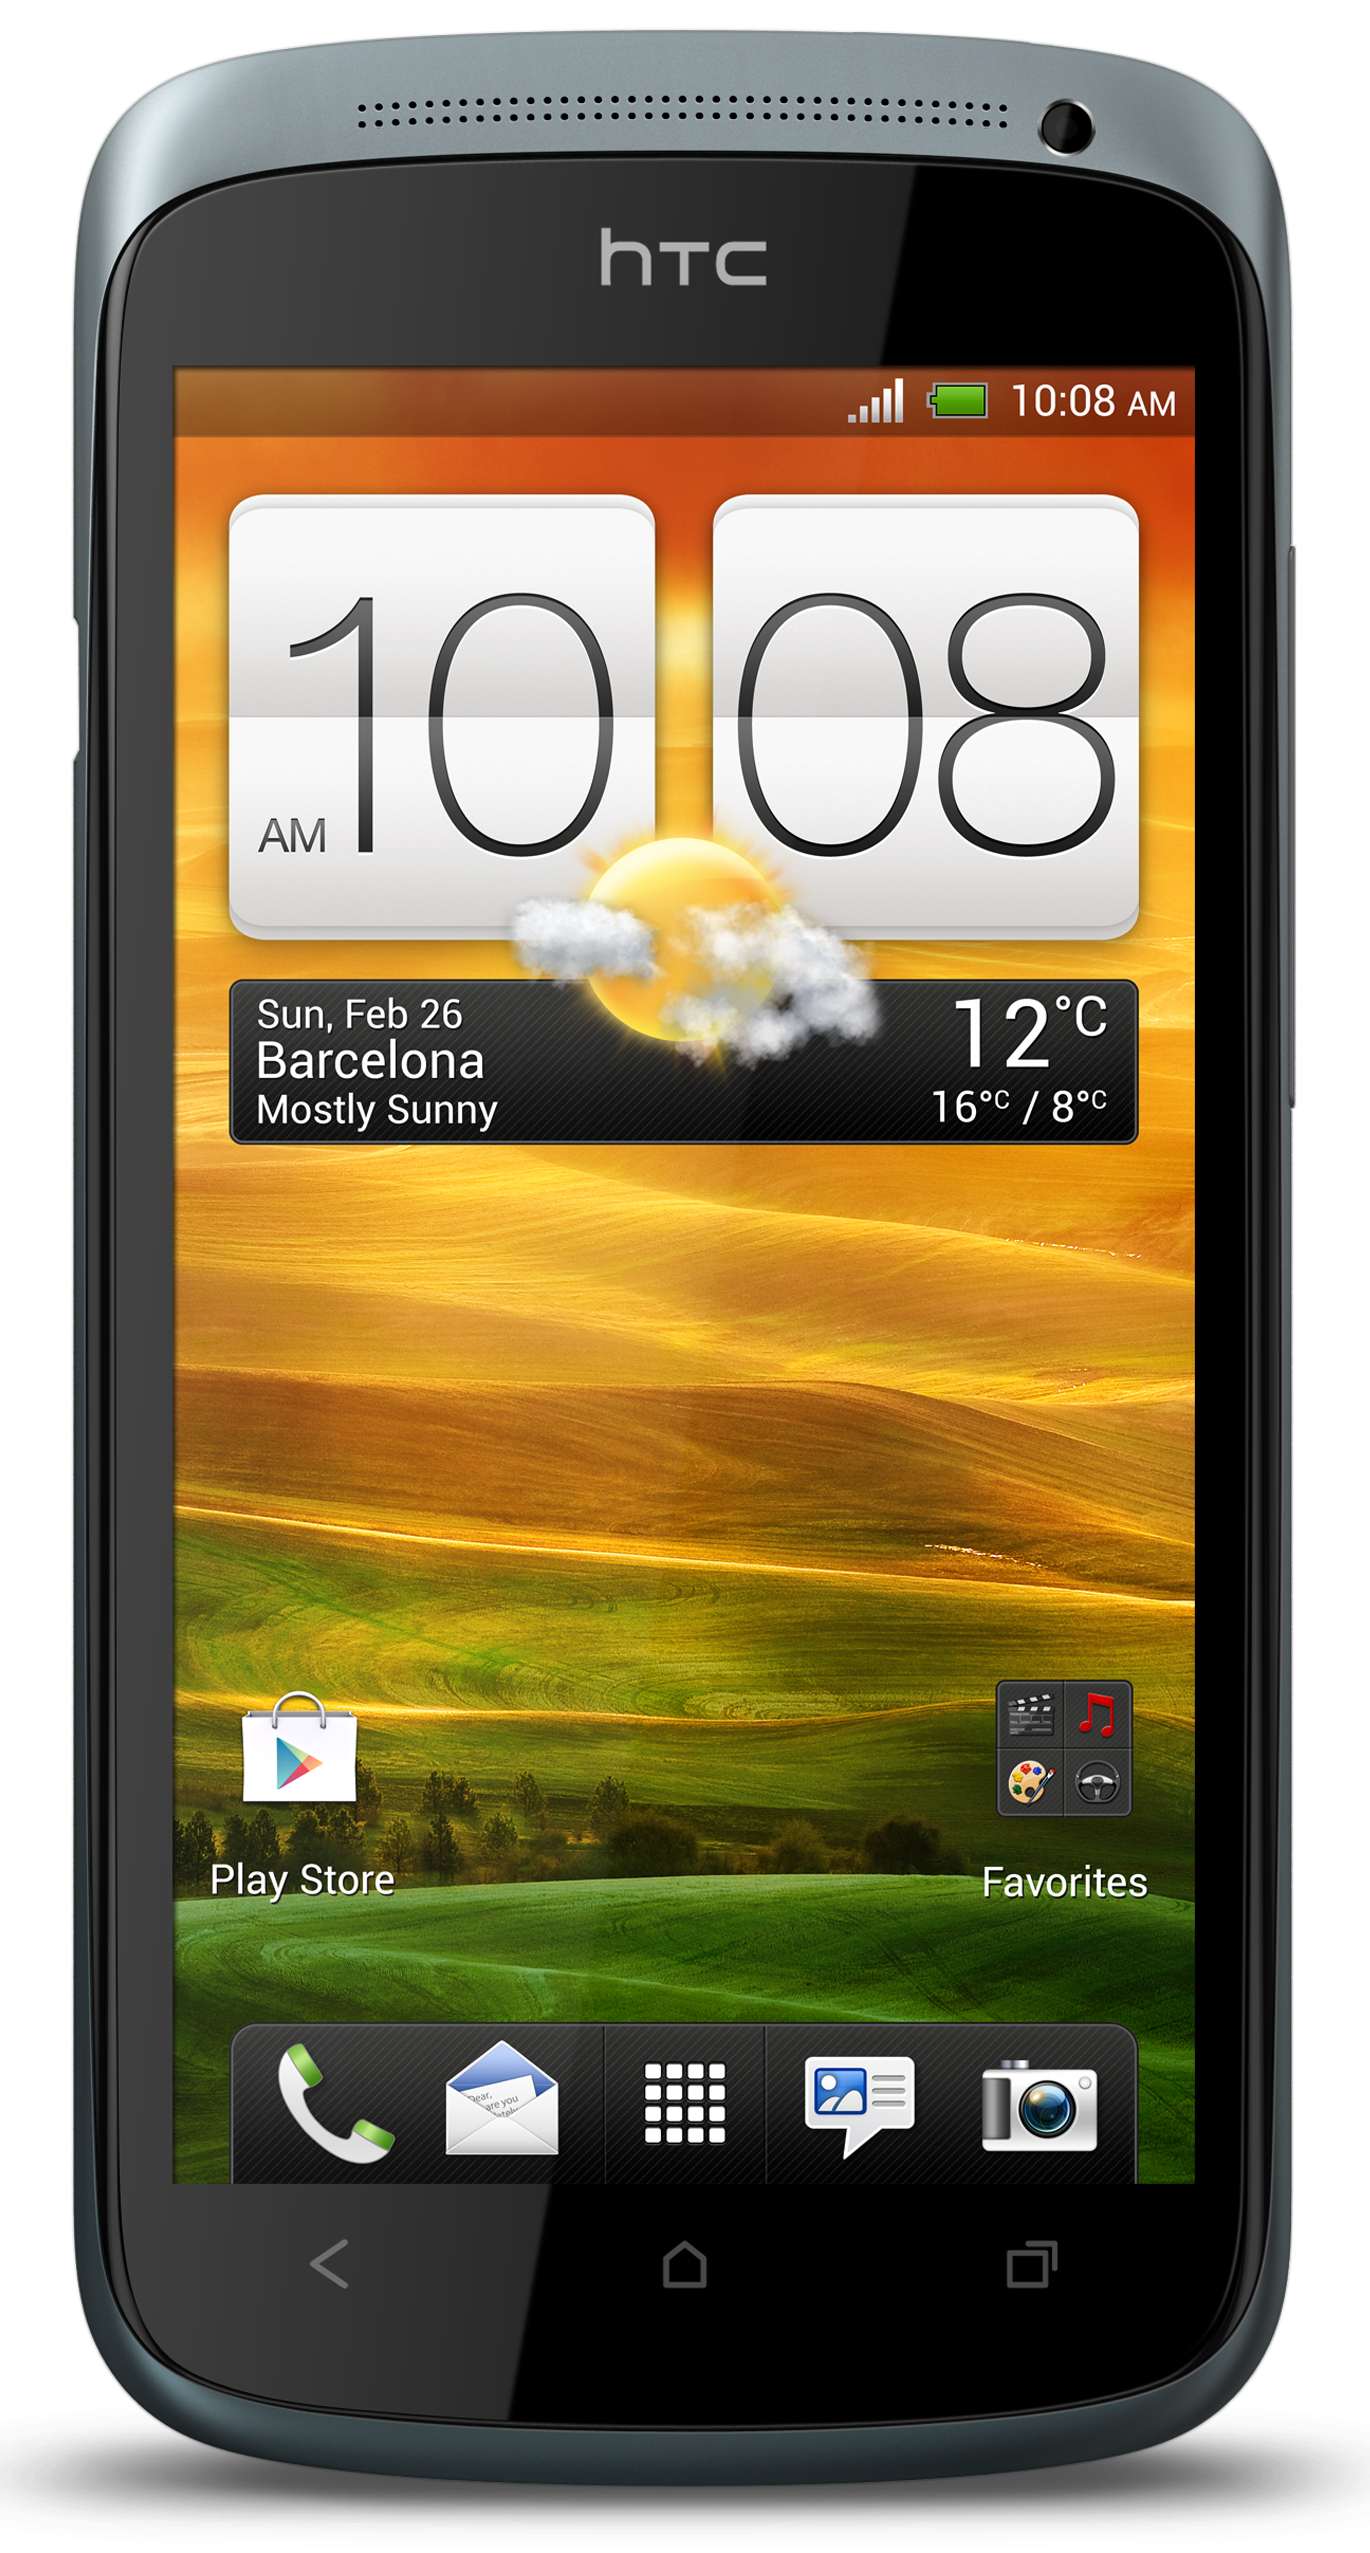 HTC One S Overview   HTC Smartphones